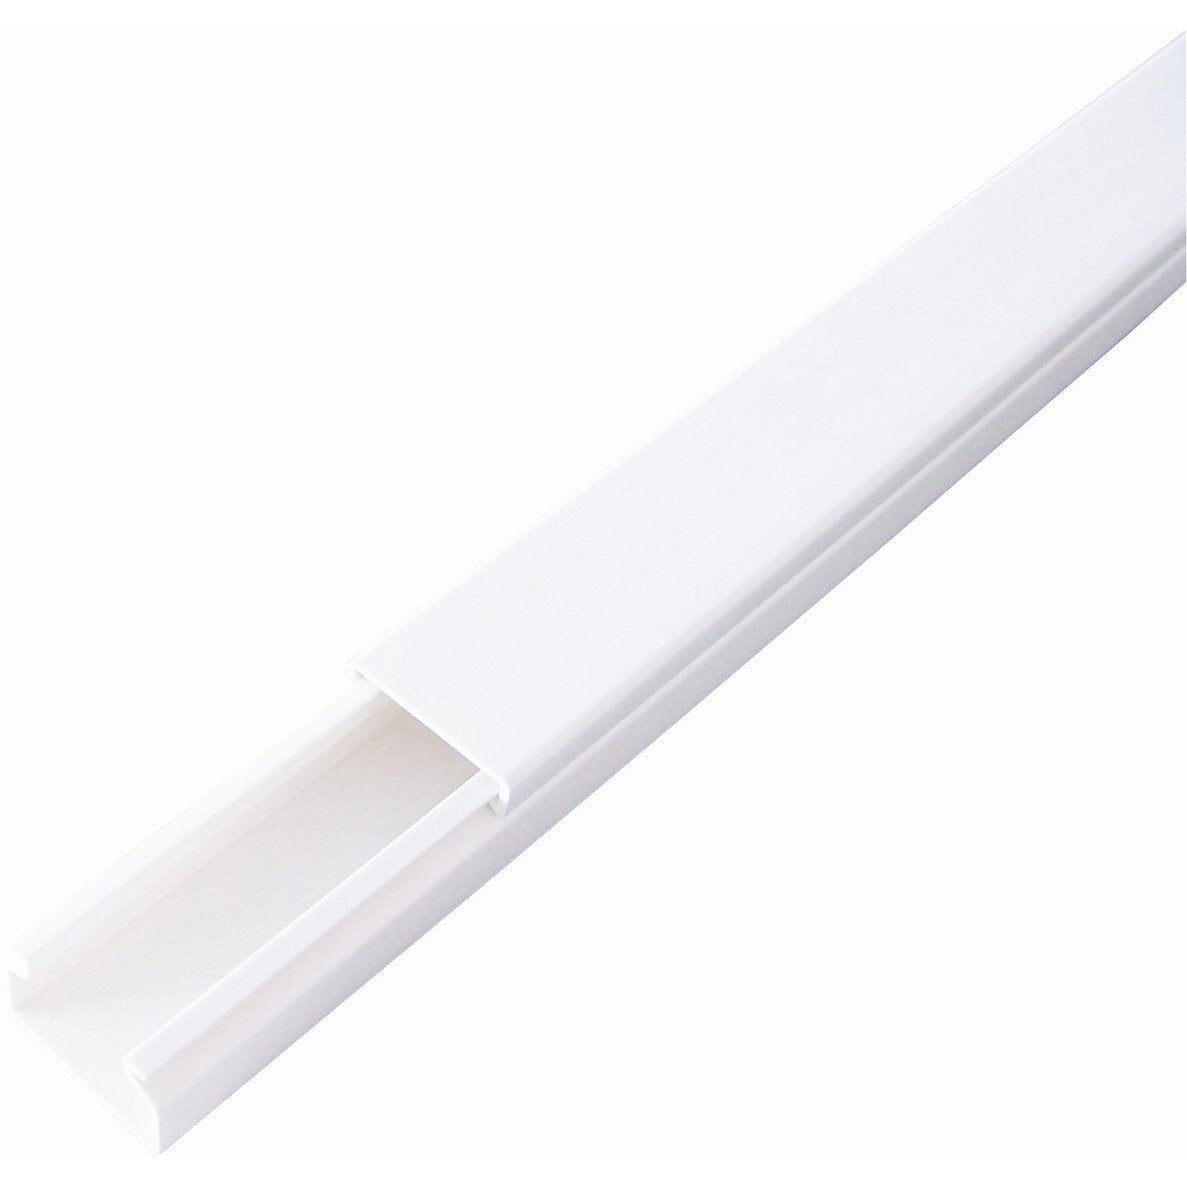 Moulure en pvc blanc l 200 x h 4 x p 2 5 cm leroy merlin for Cache electrique